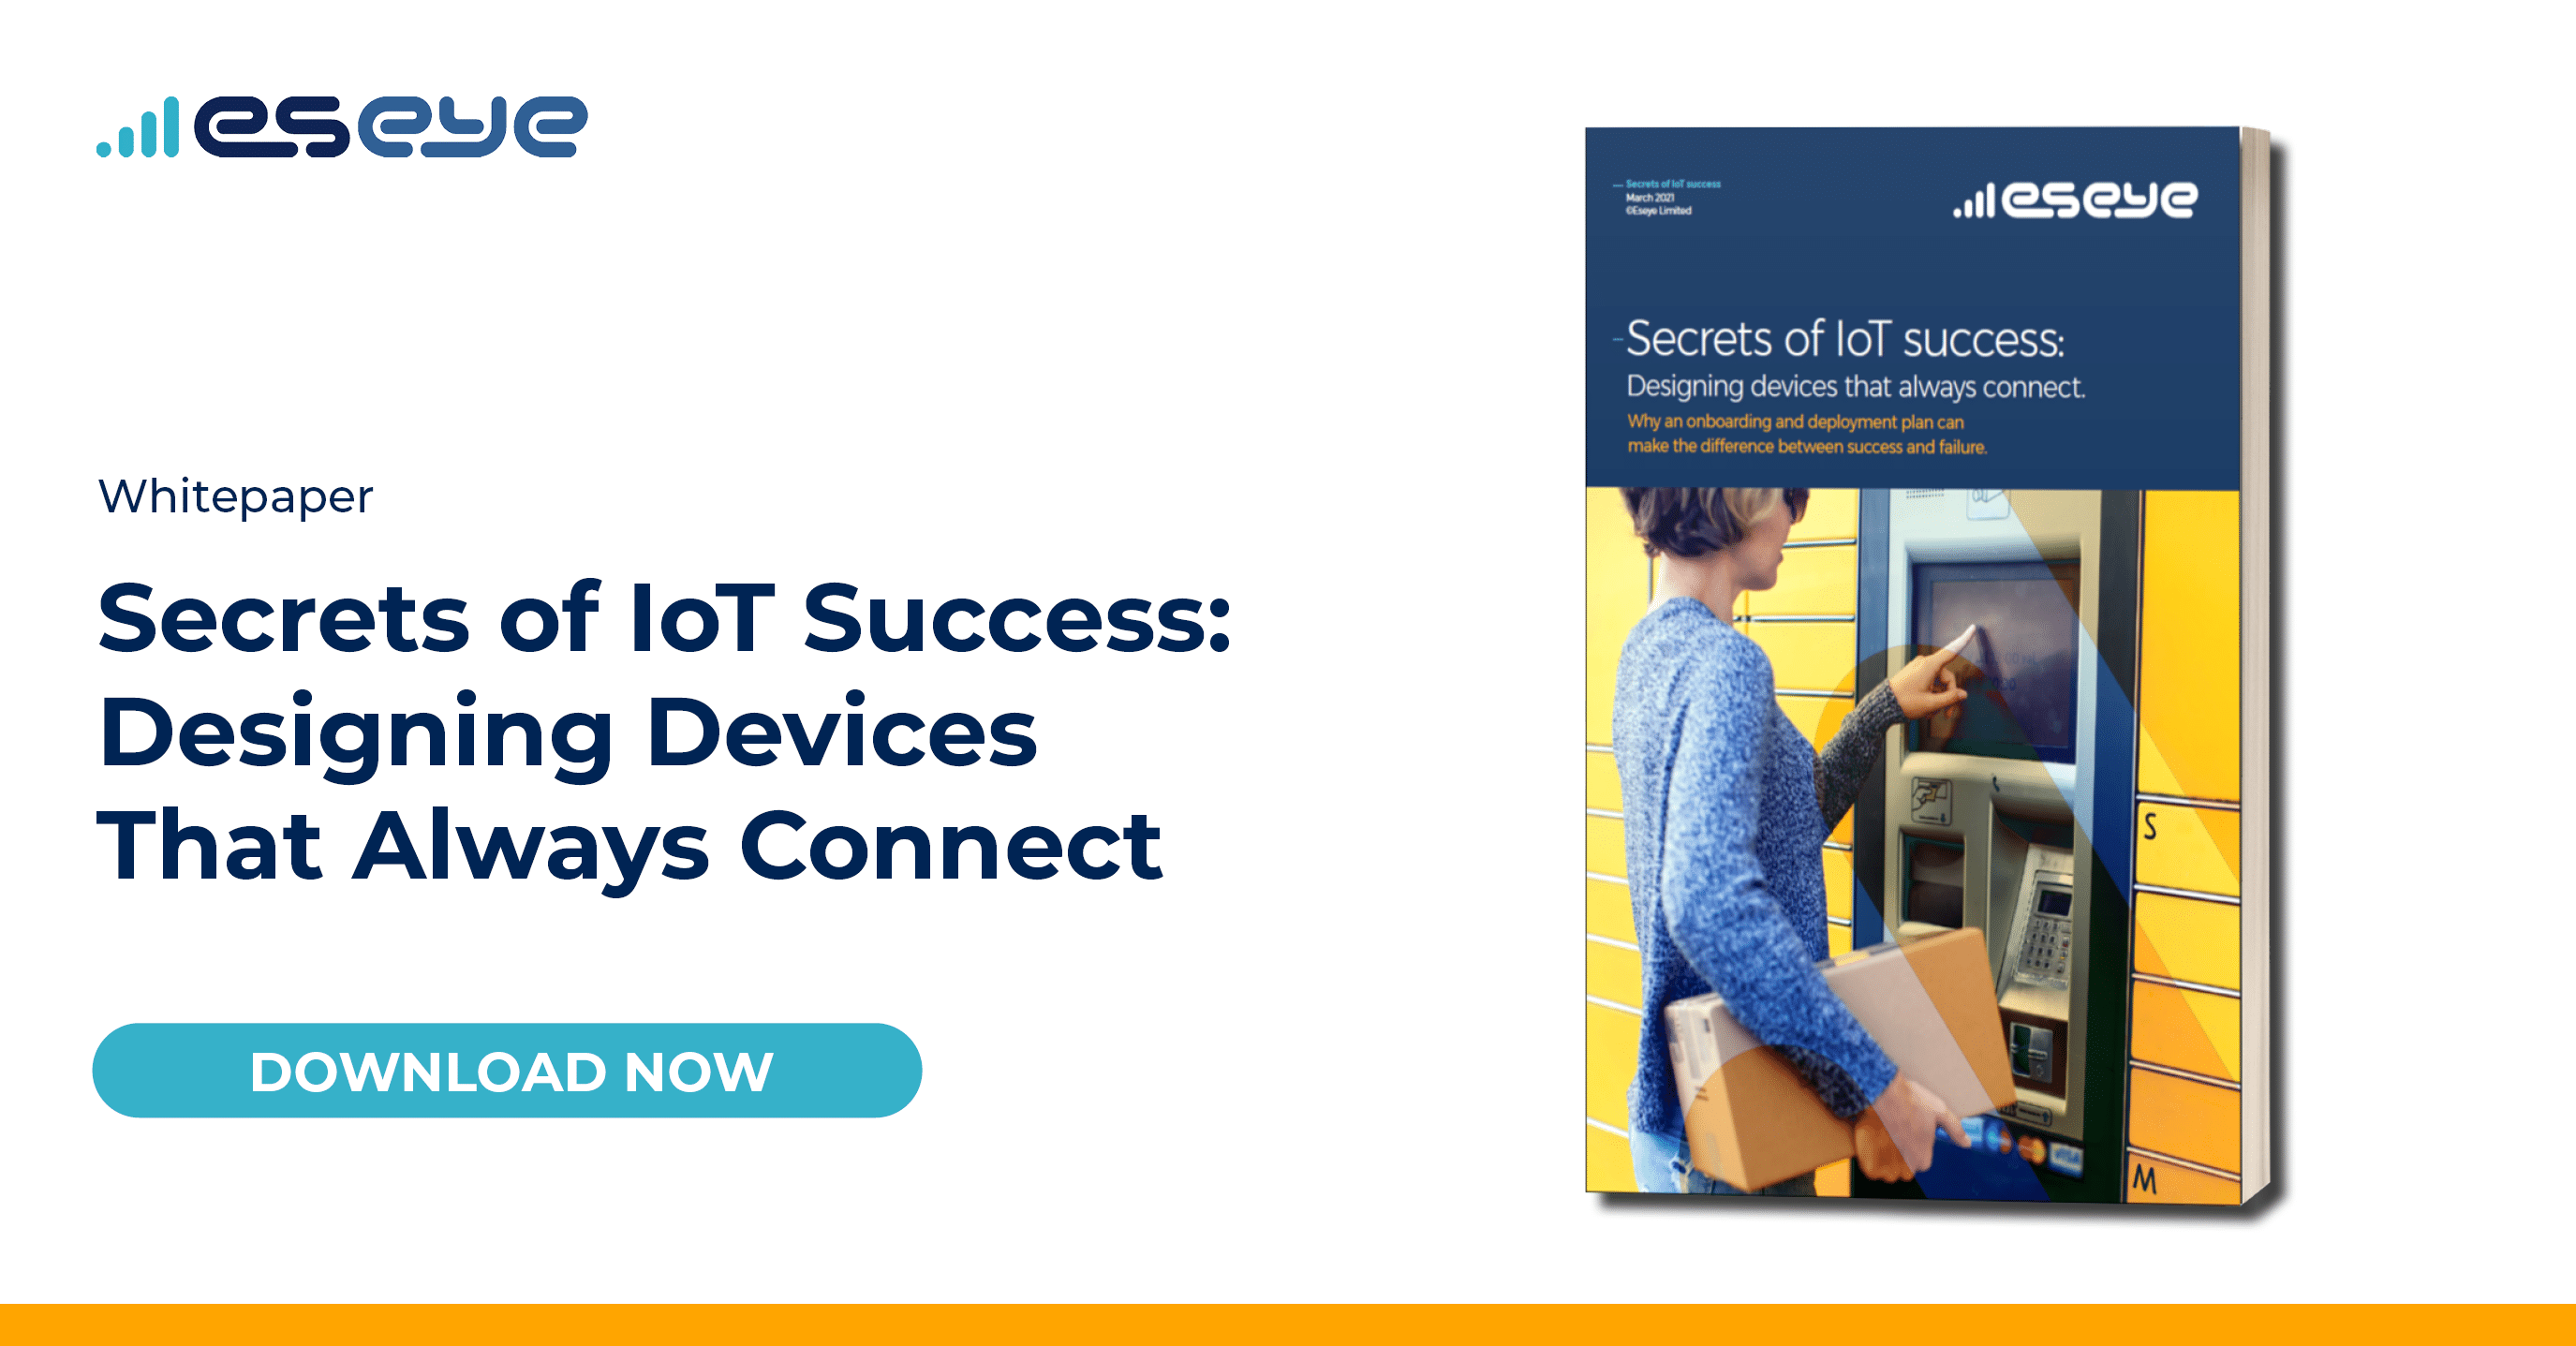 Download the Eseye Secrets to IoT Success Whitepaper